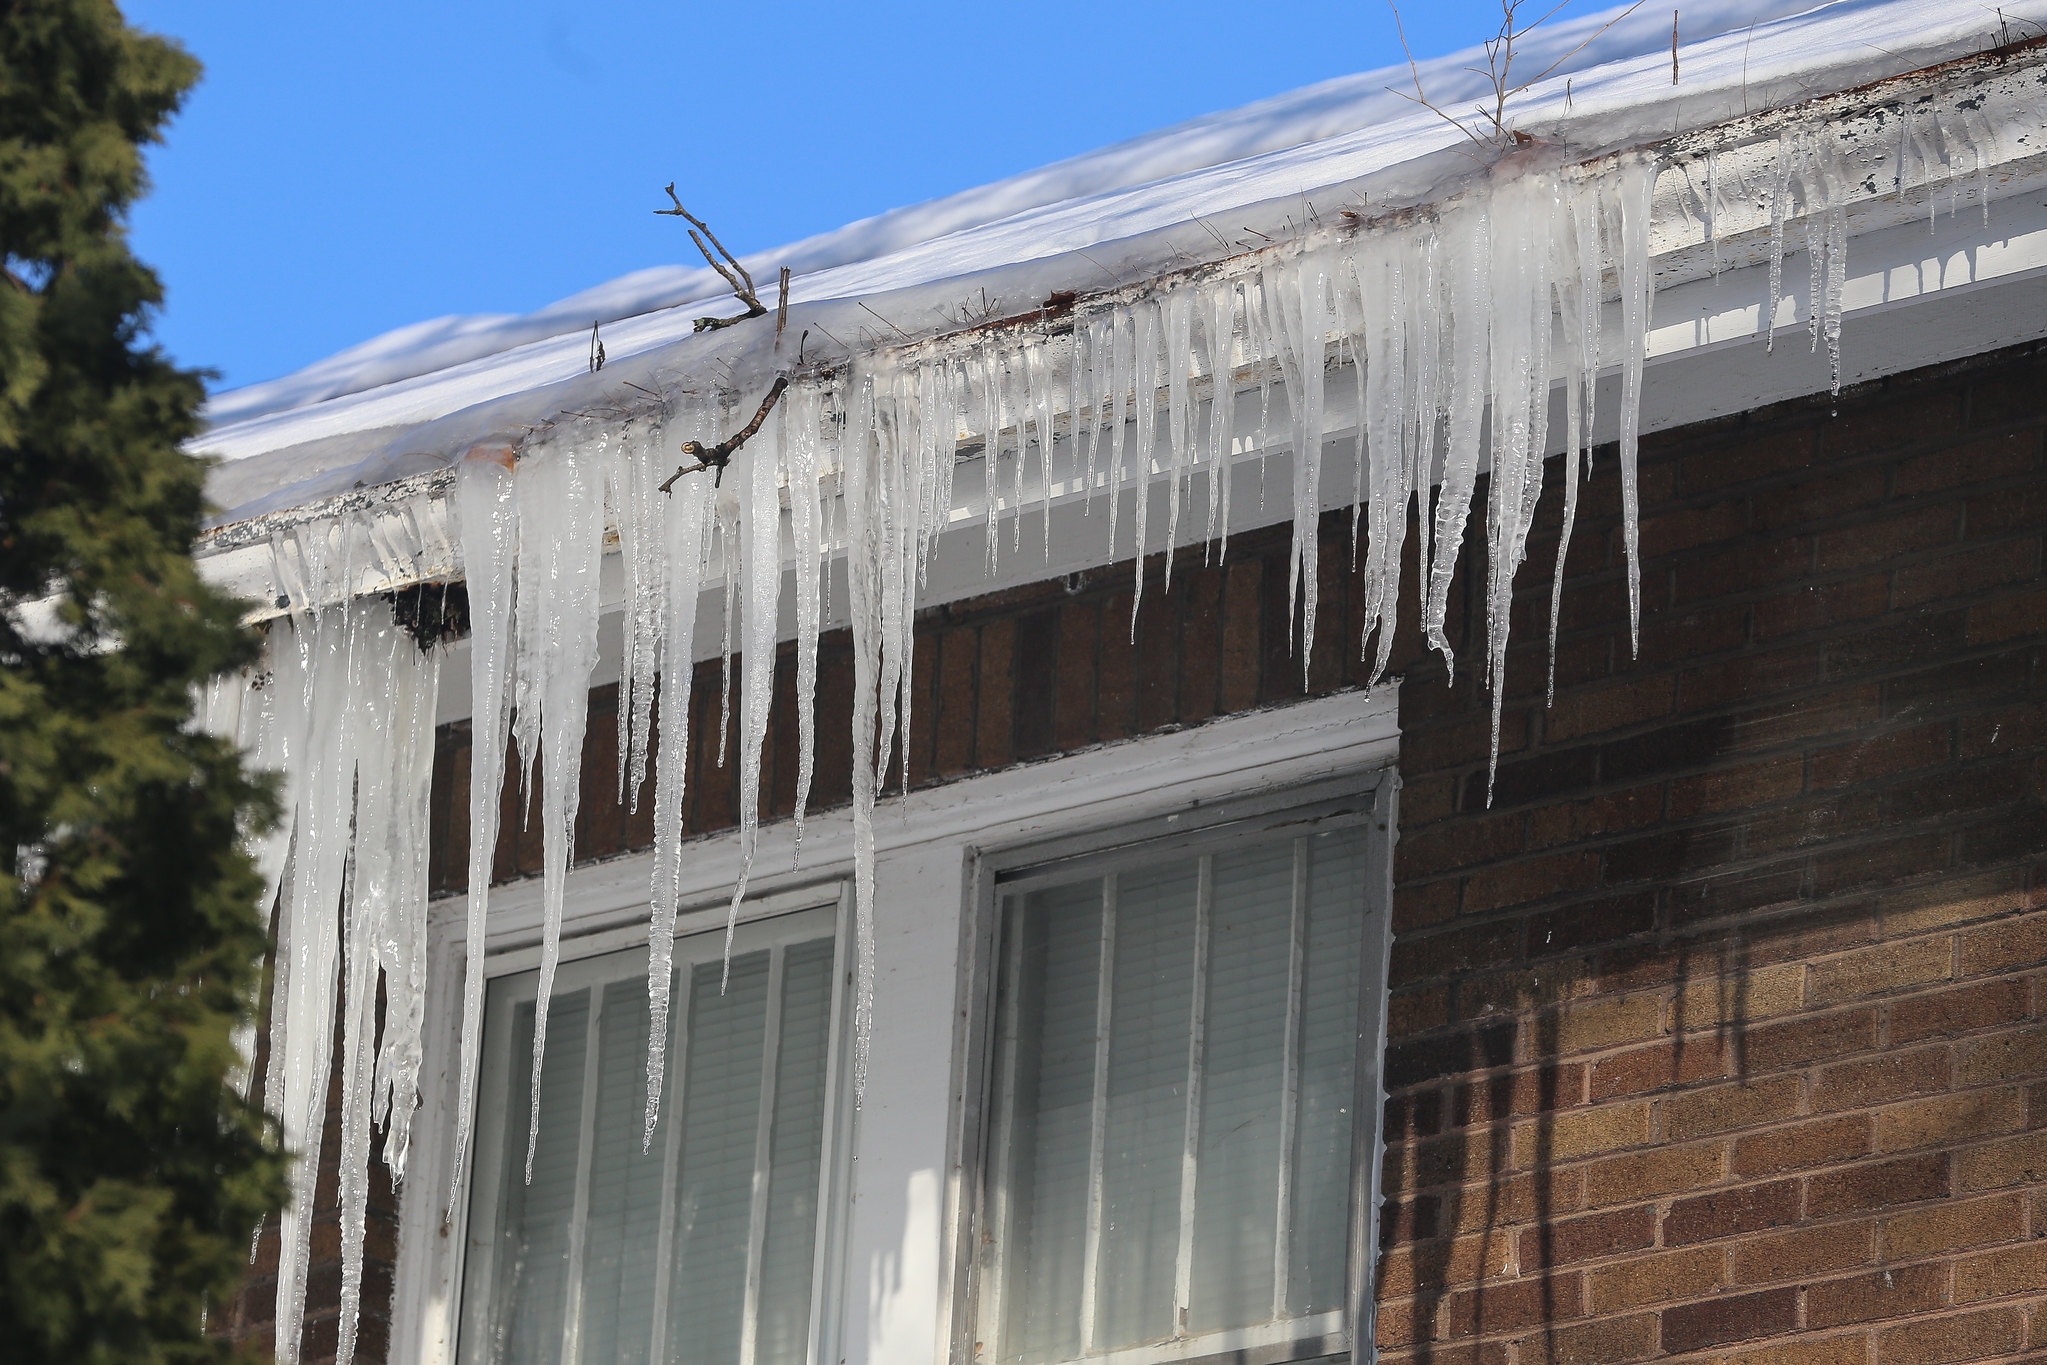 Ice dam that formed on a roof